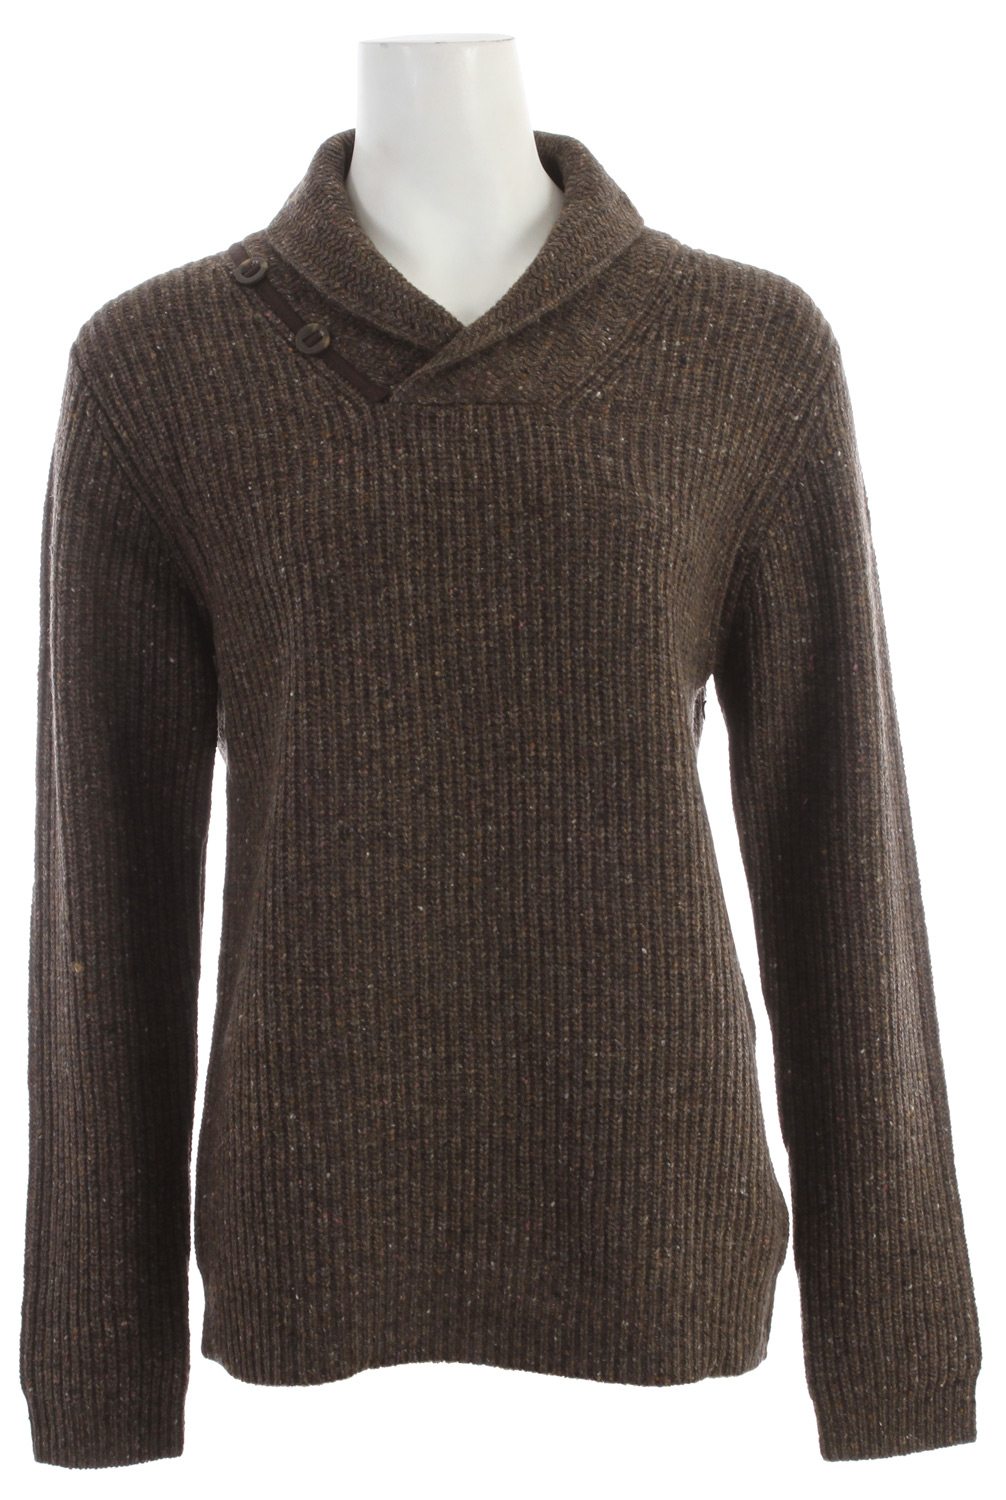 Thick ribbed body knits and the military buttoned shawl collar style this cozy lambswool sweater. - $71.95